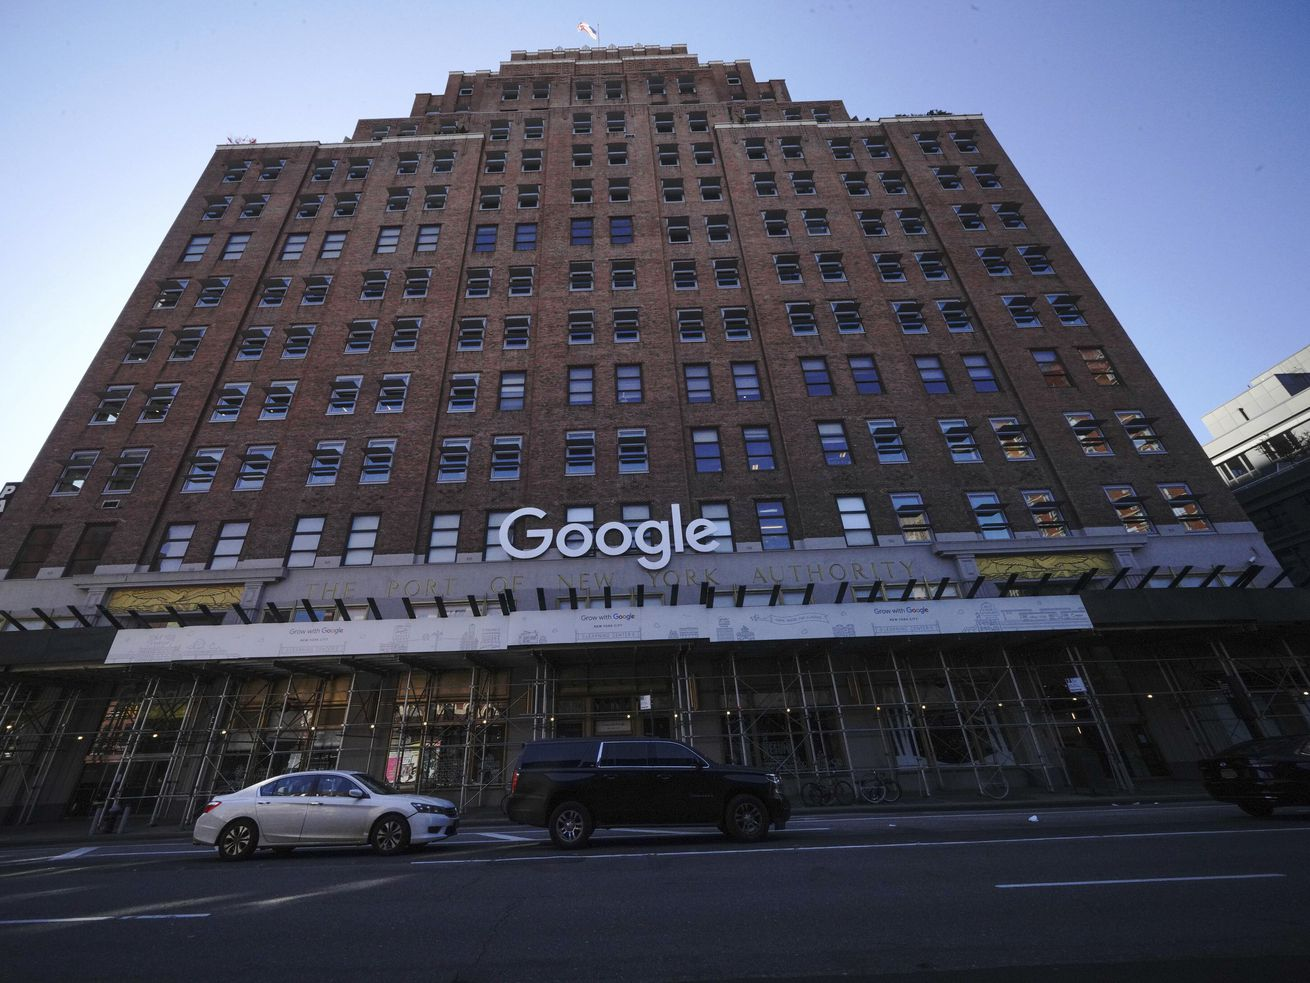 """A high-rise brick building with a bright white """"Google"""" sign on the facade."""